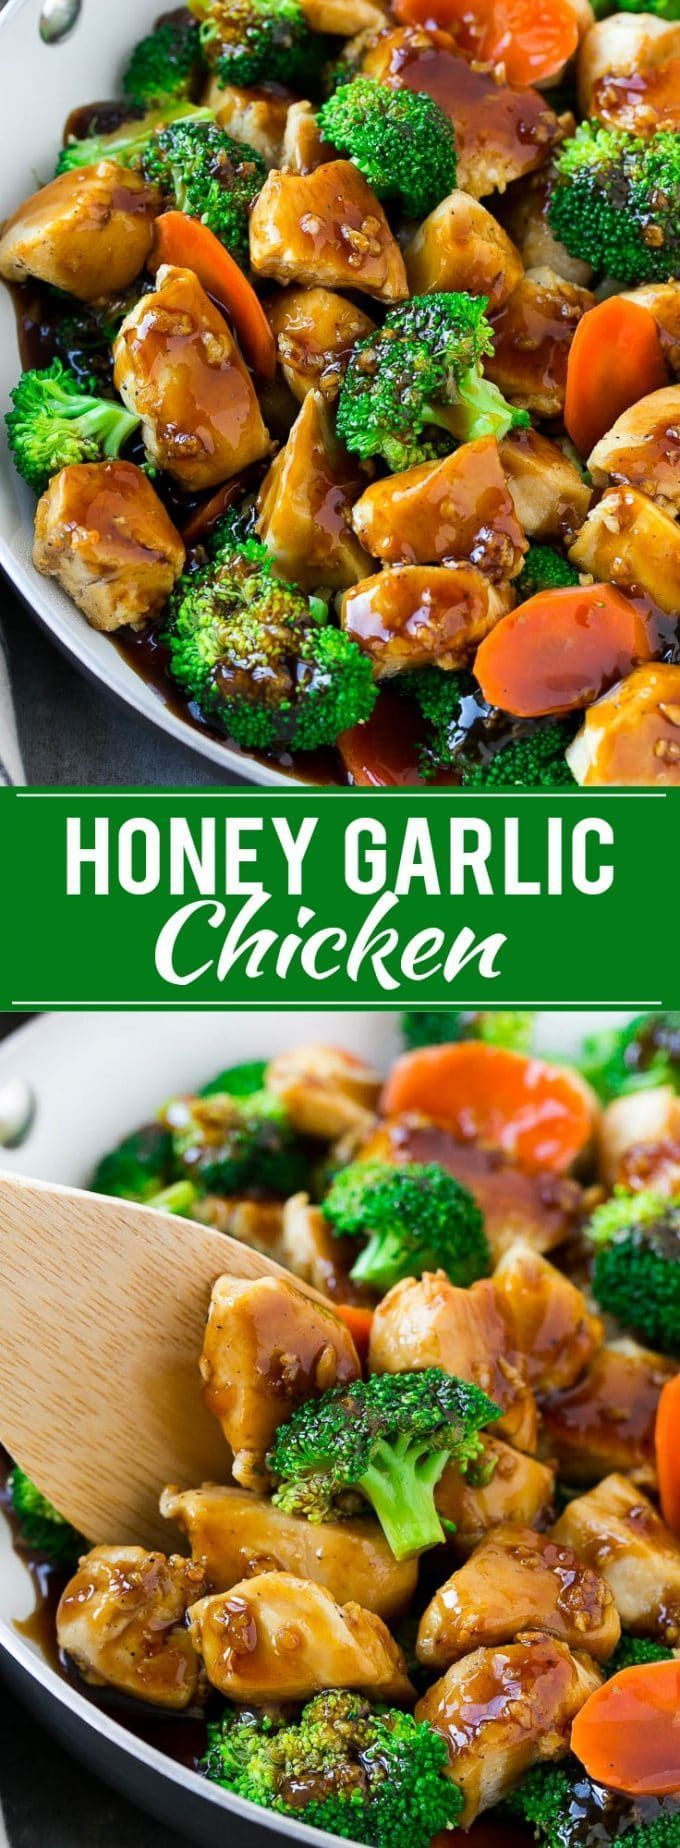 THIS HONEY GARLIC CHICKEN STIR FRY RECIPE IS FULL OF CHICKEN AND VEGGIES, ALL COATED IN THE EASIEST SWEET AND SAVORY SAUCE. A HEALTHIER DINNER OPTION THAT THE WHOLE FAMILY WILL LOVE! (Chicken Recipes)